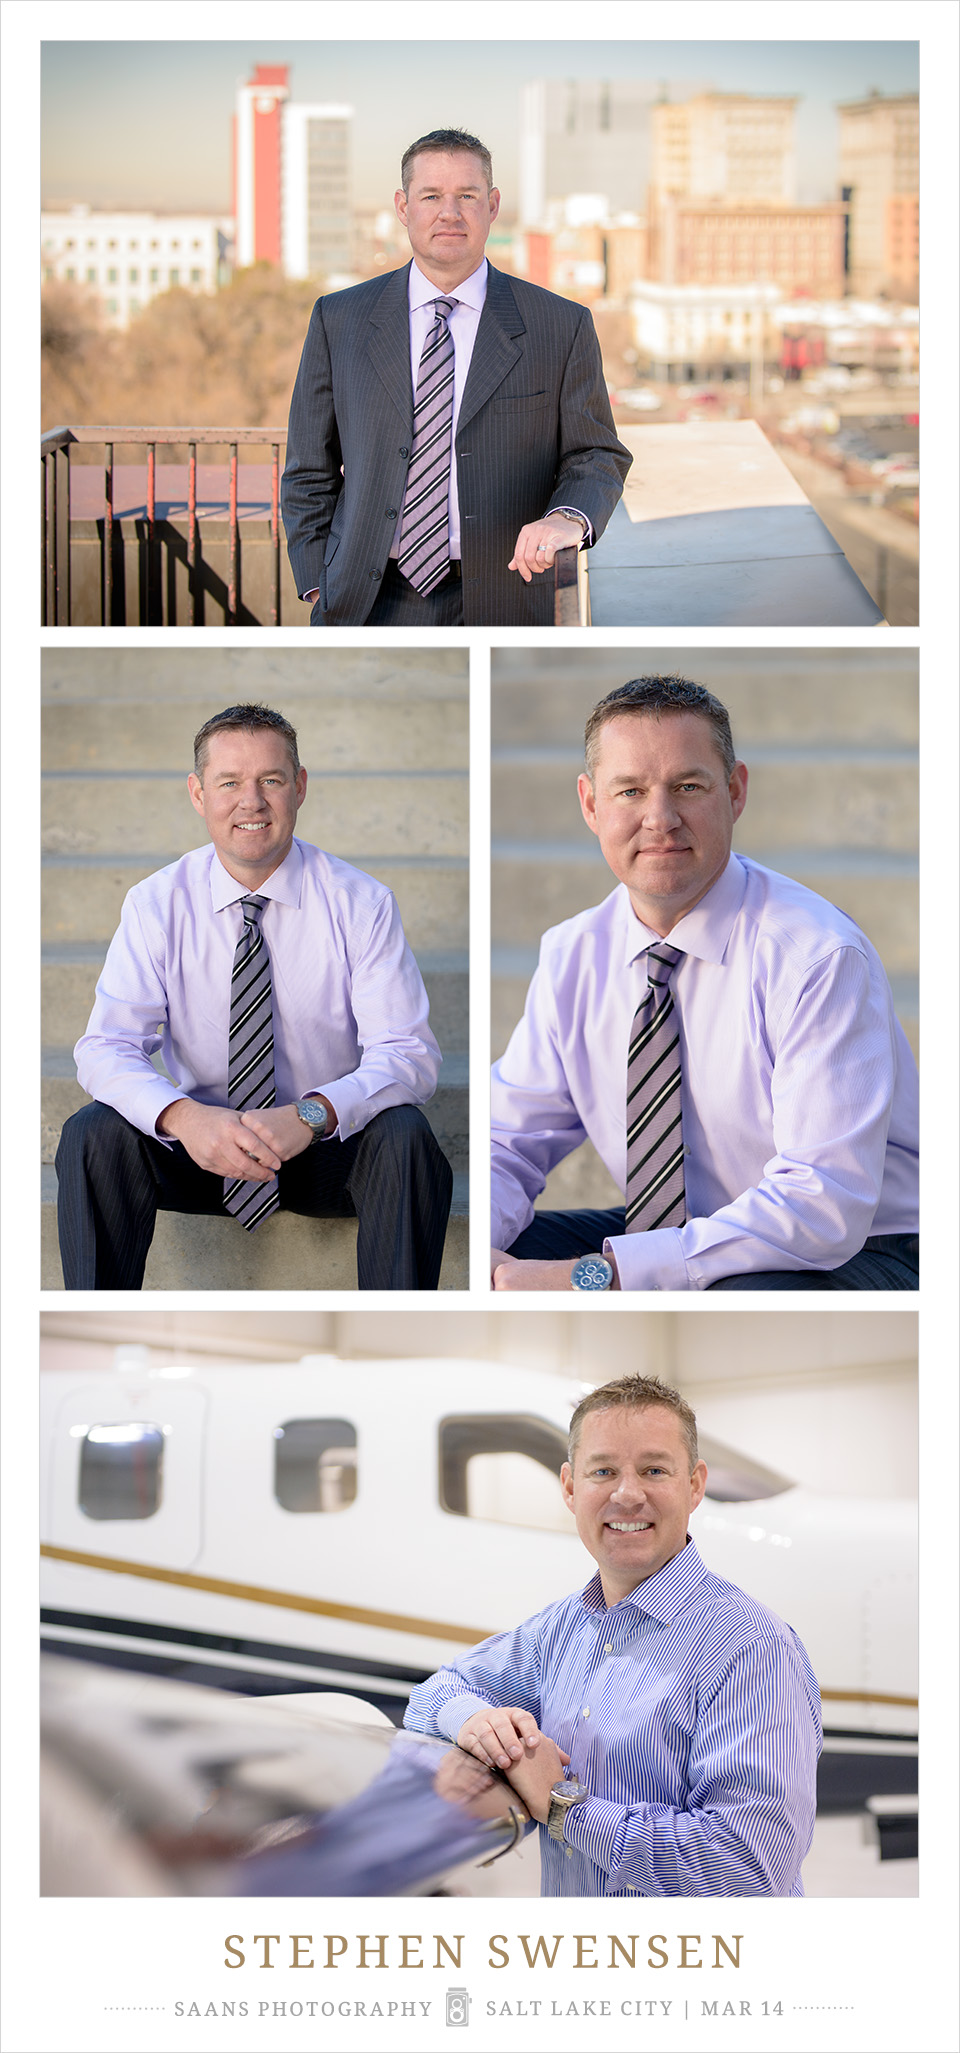 Stephen Swensen Executive Portrait